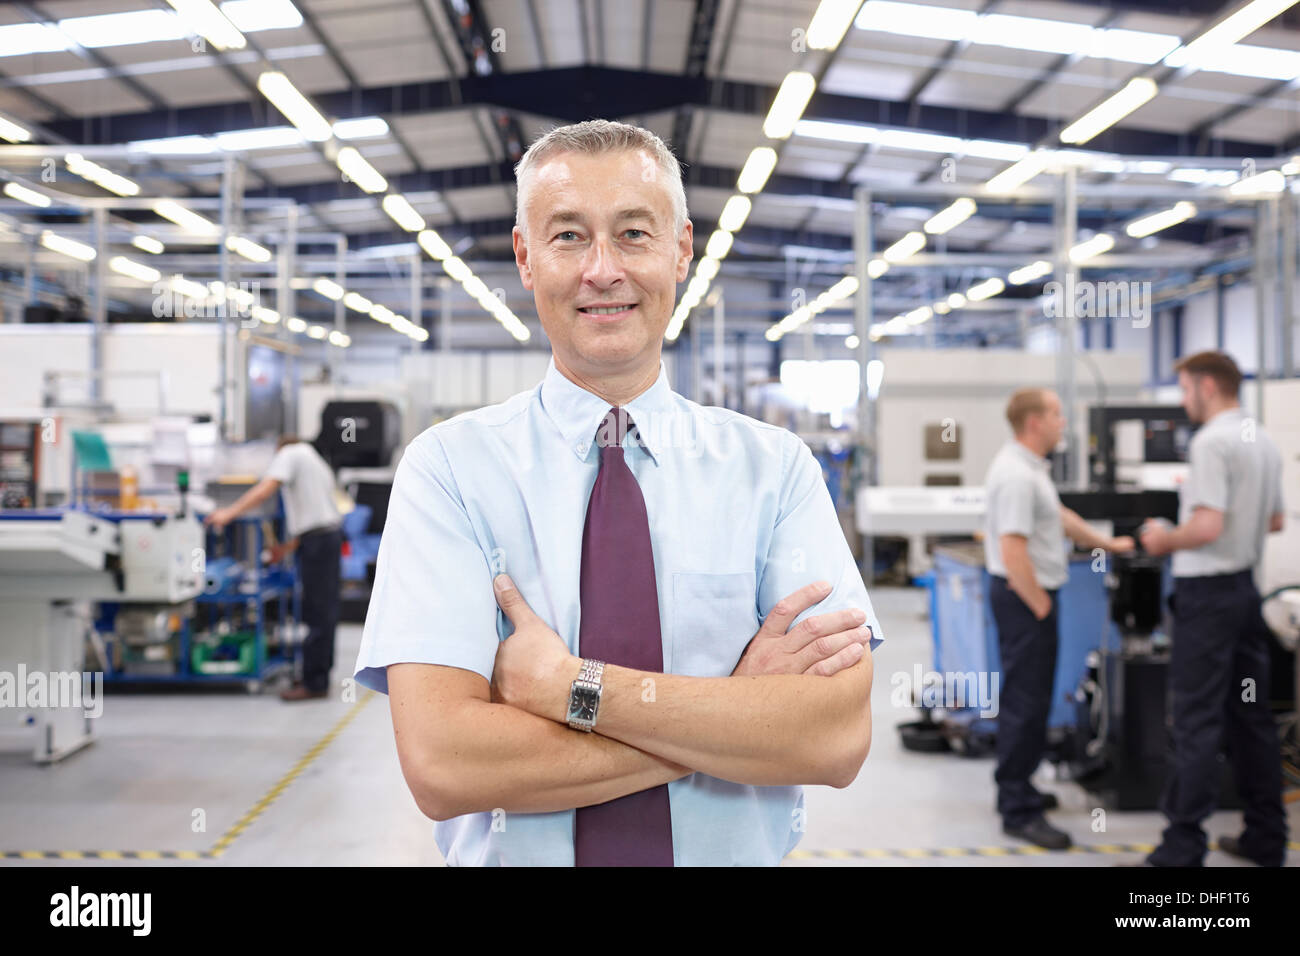 Portrait of manager in engineering factory - Stock Image